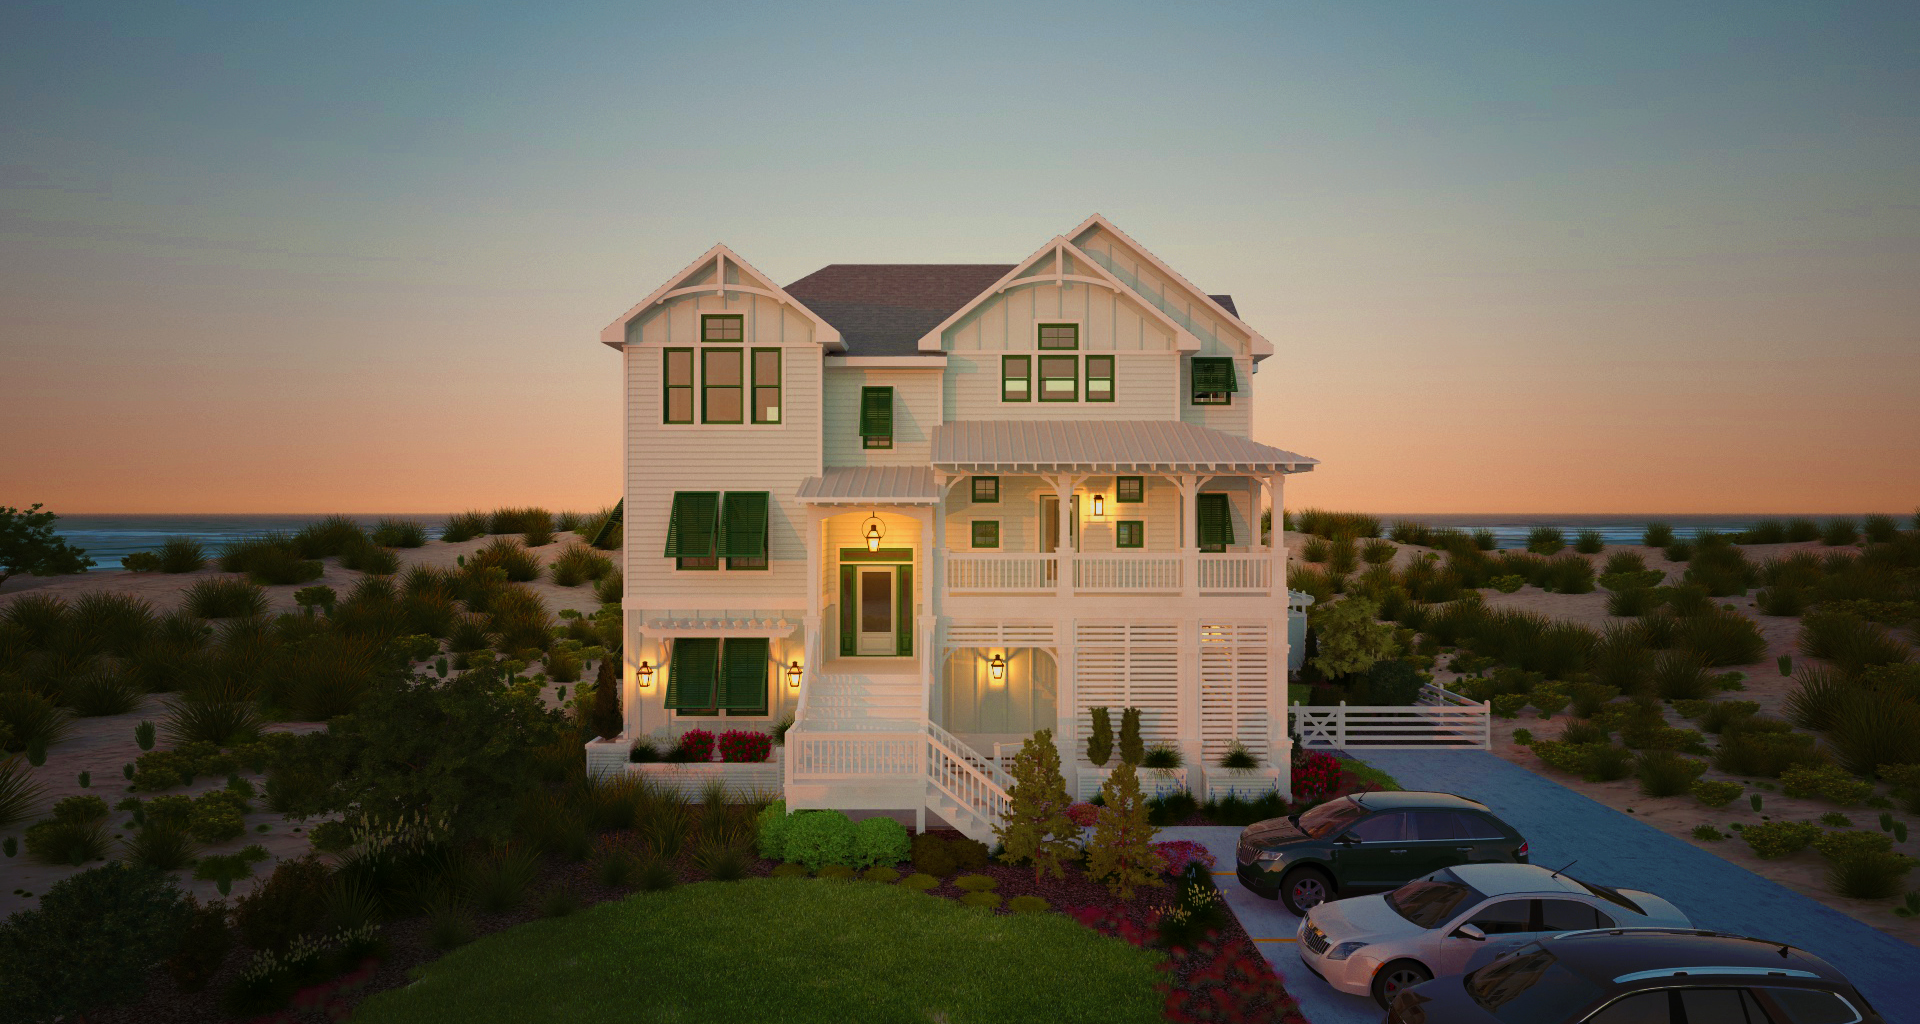 Captivating Florez Design Studios | House Plans/Coastal Home Design/OBX House ... Part 21